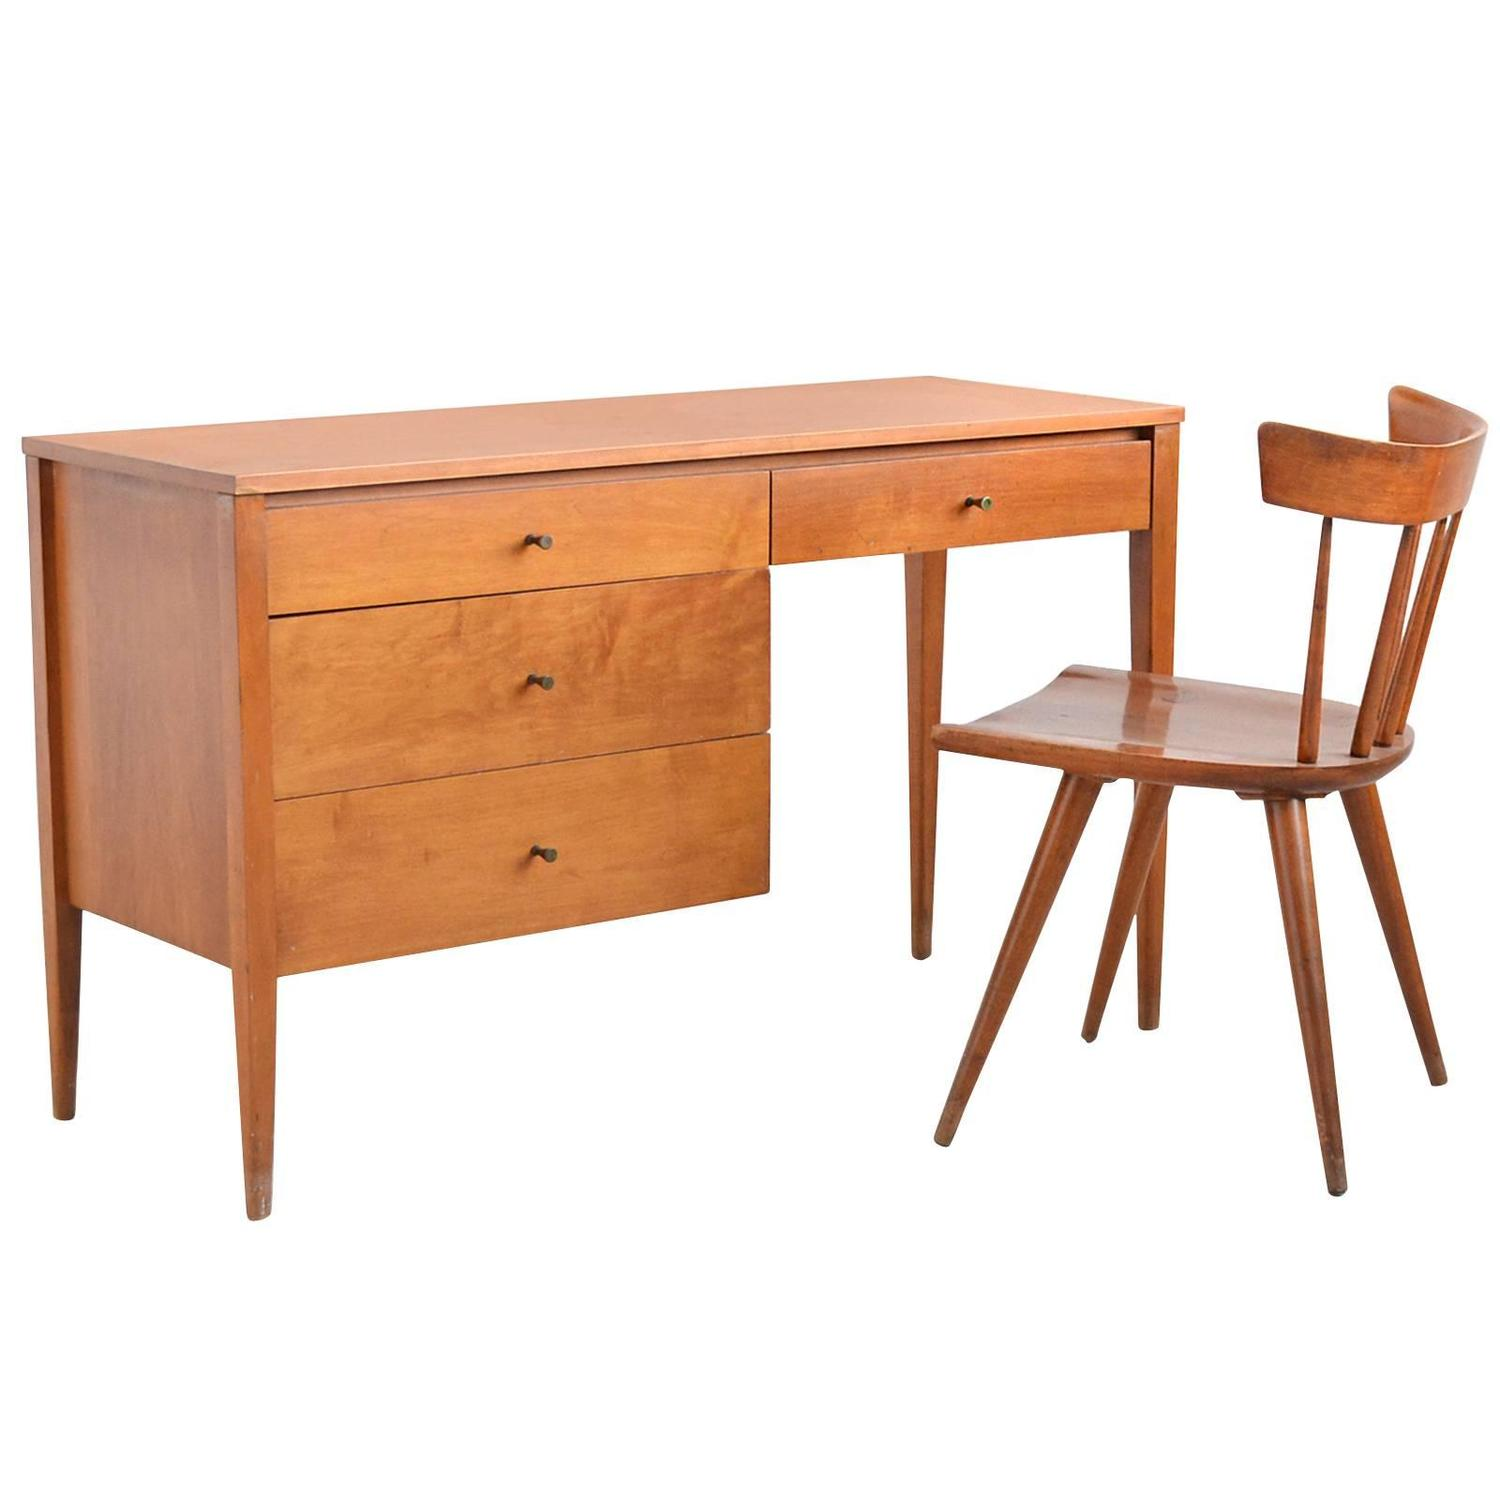 Paul McCobb Planner Group Desk and Chair by Winchendon For Sale at